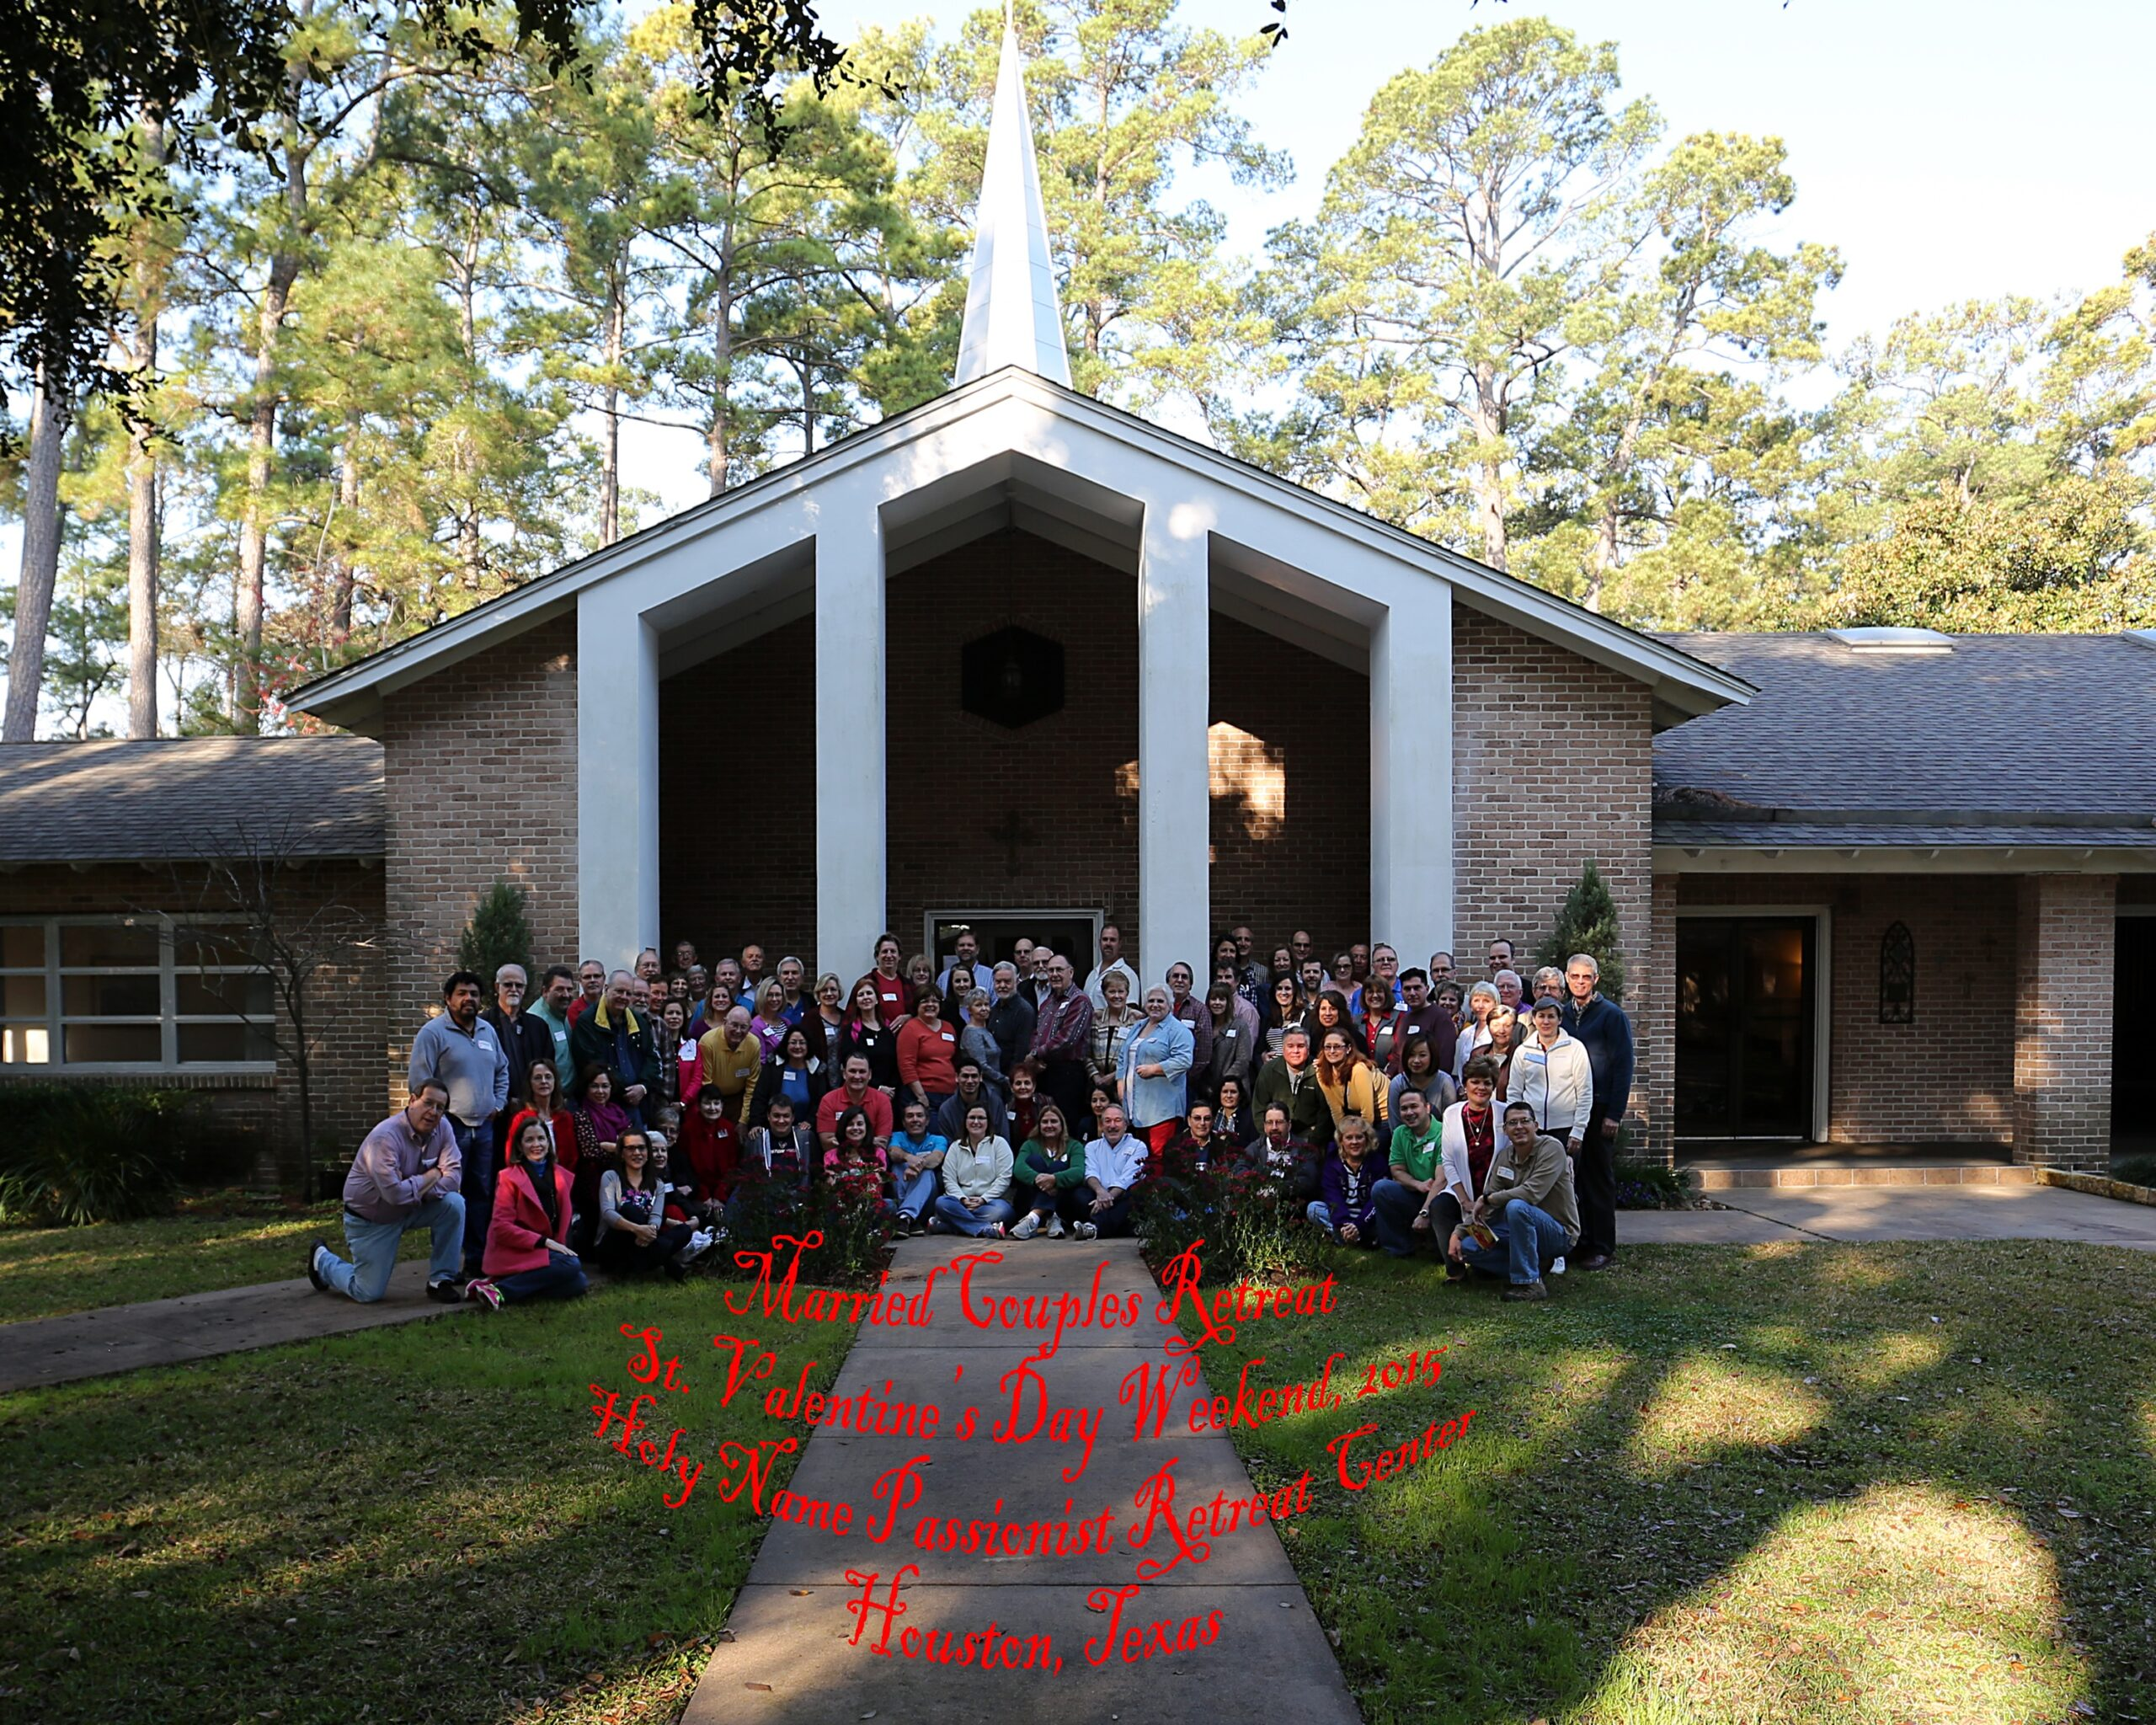 Married Couples Retreat, Feb. 13-15 2015